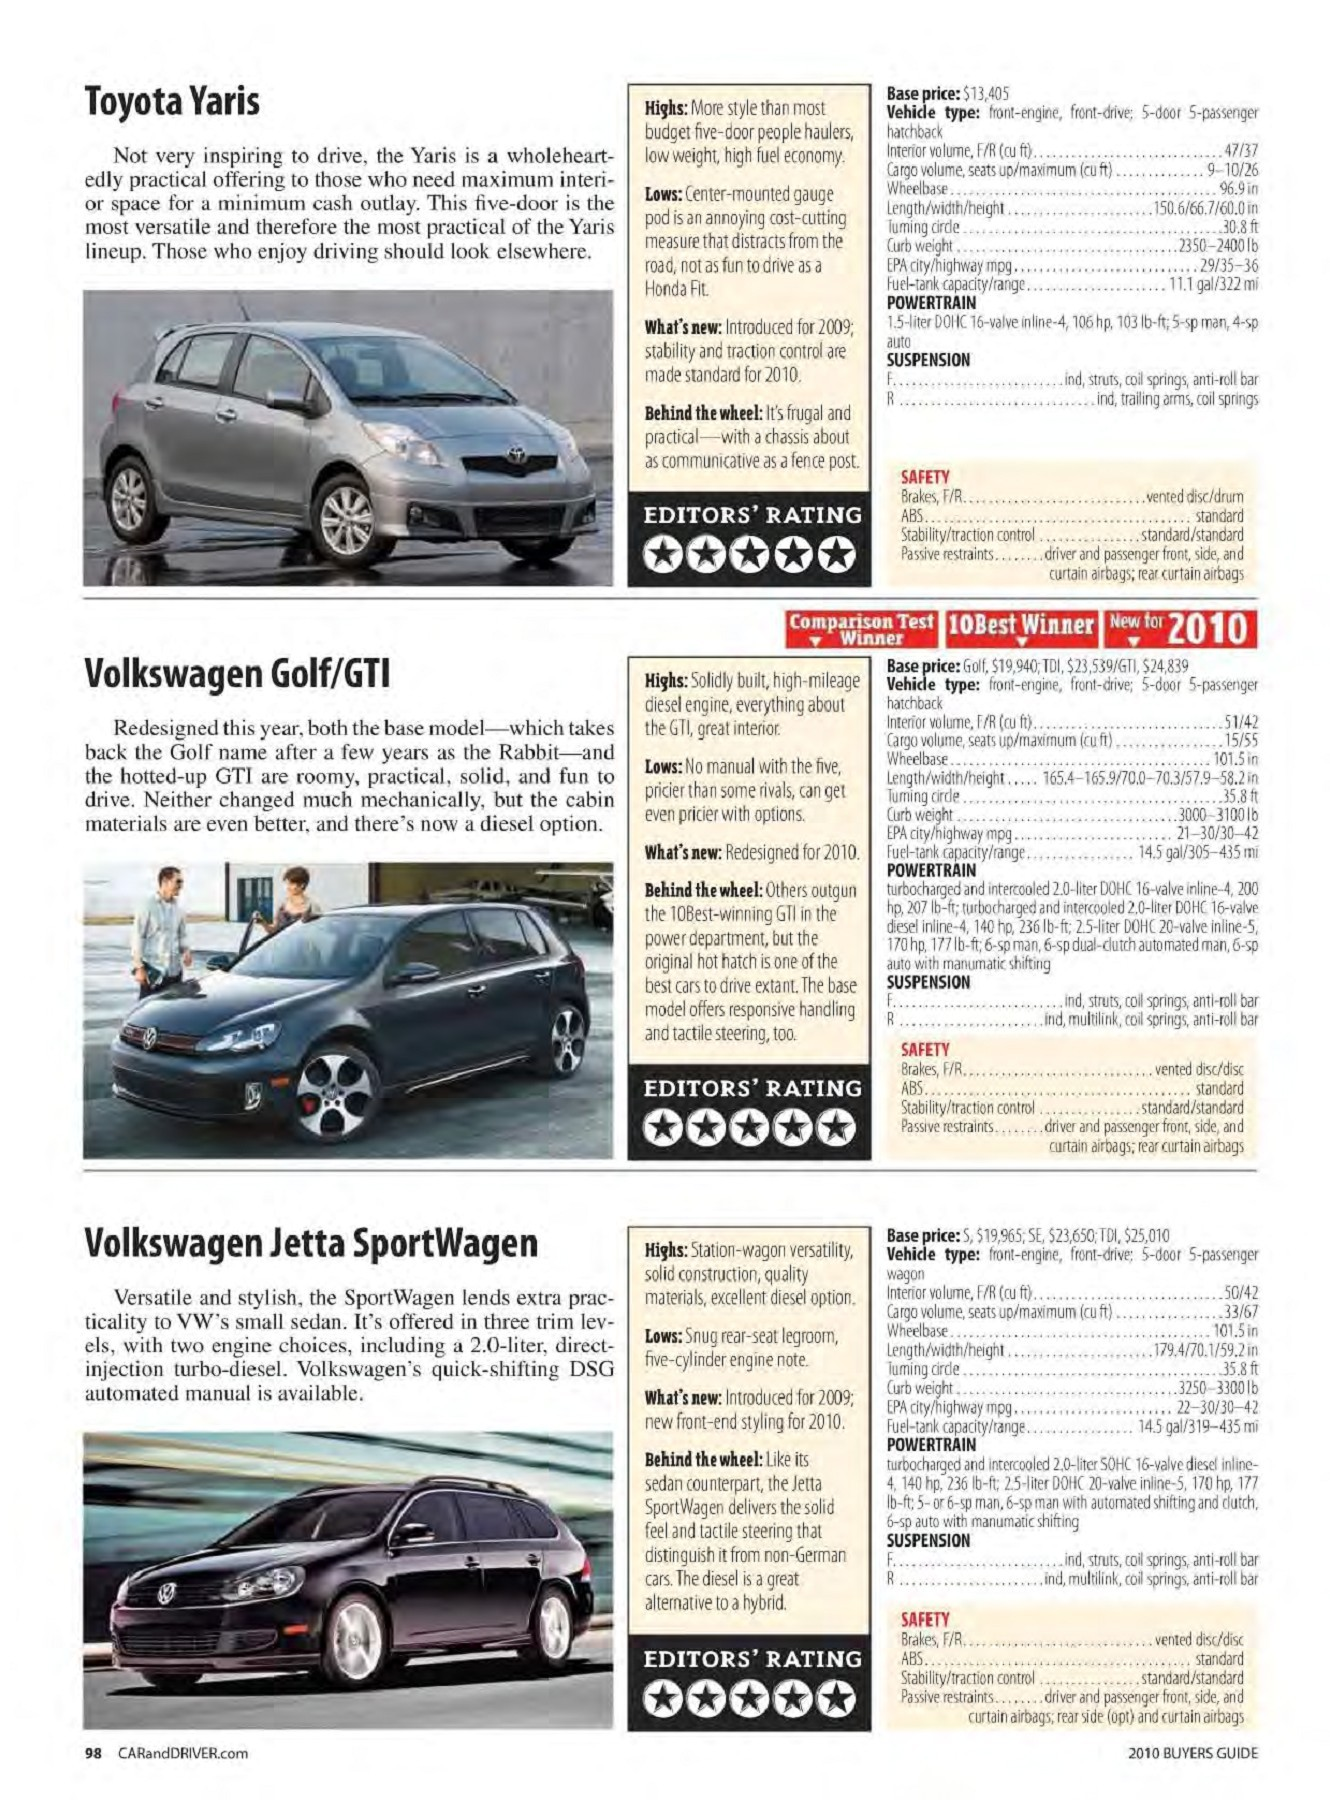 hight resolution of car and driver buyer s guide 2010 pages 101 150 text version pubhtml5